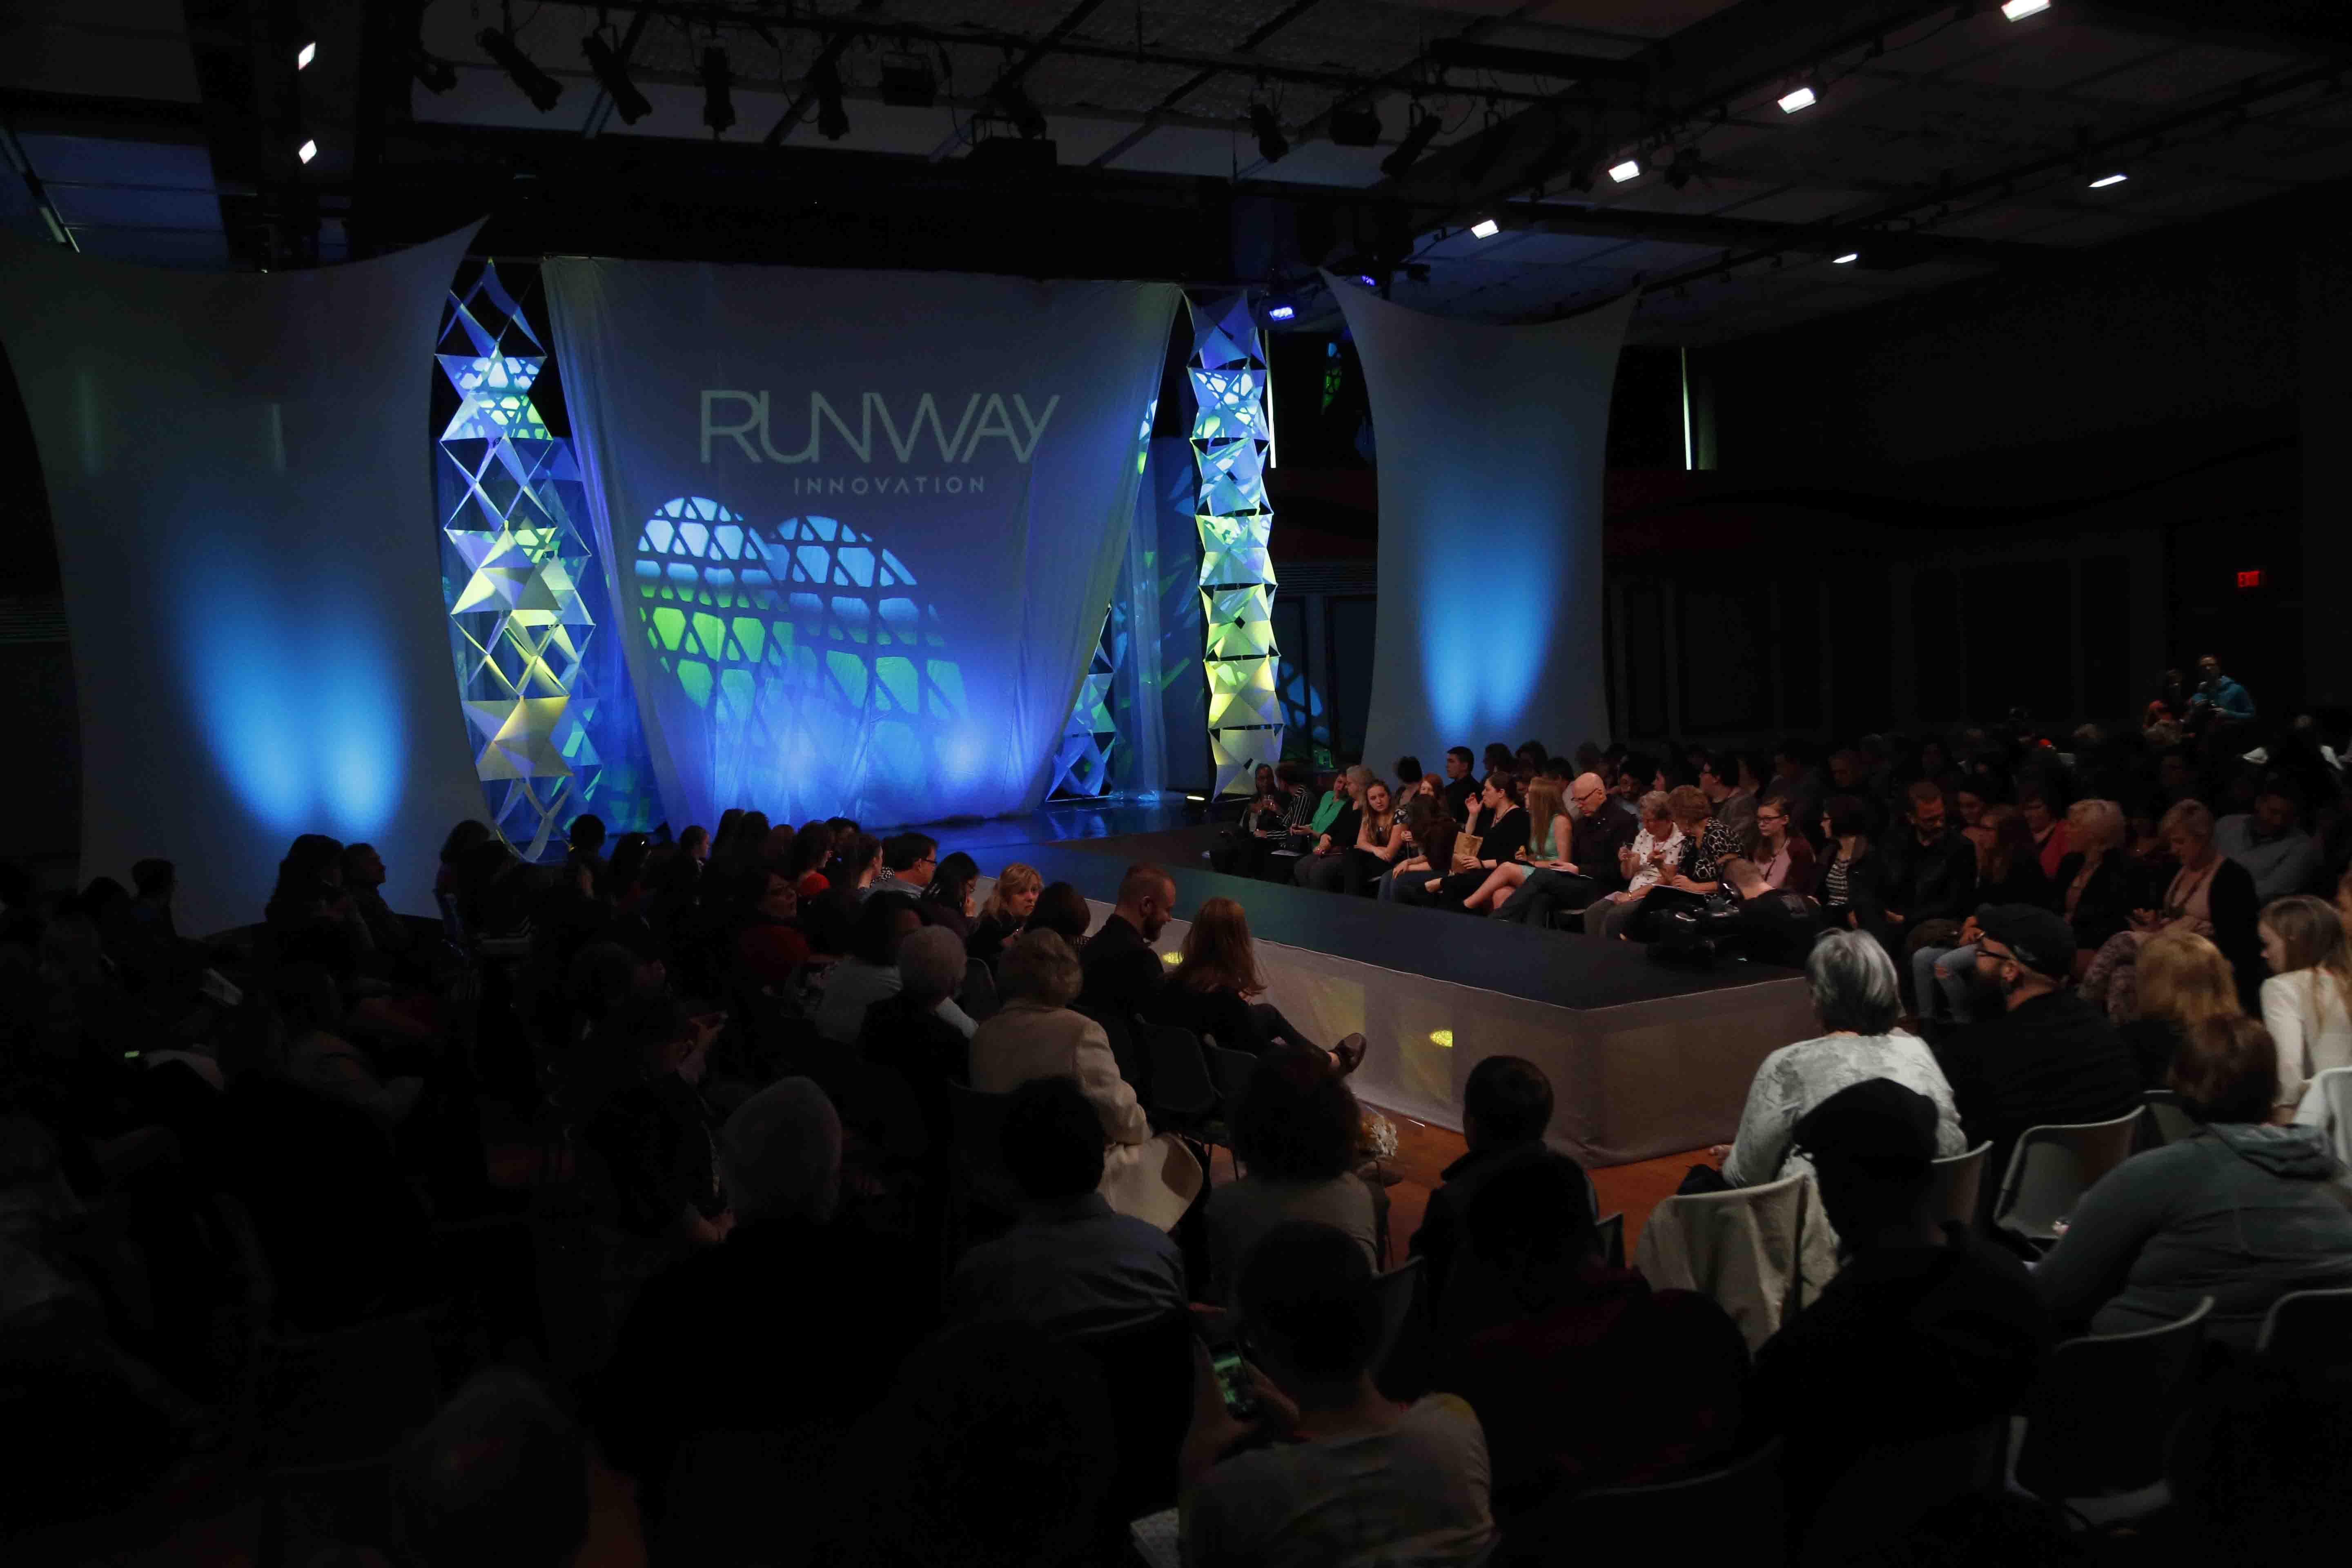 Runway will feature wallpaper designs from Charles Burchfield during his time at a wallpaper company.